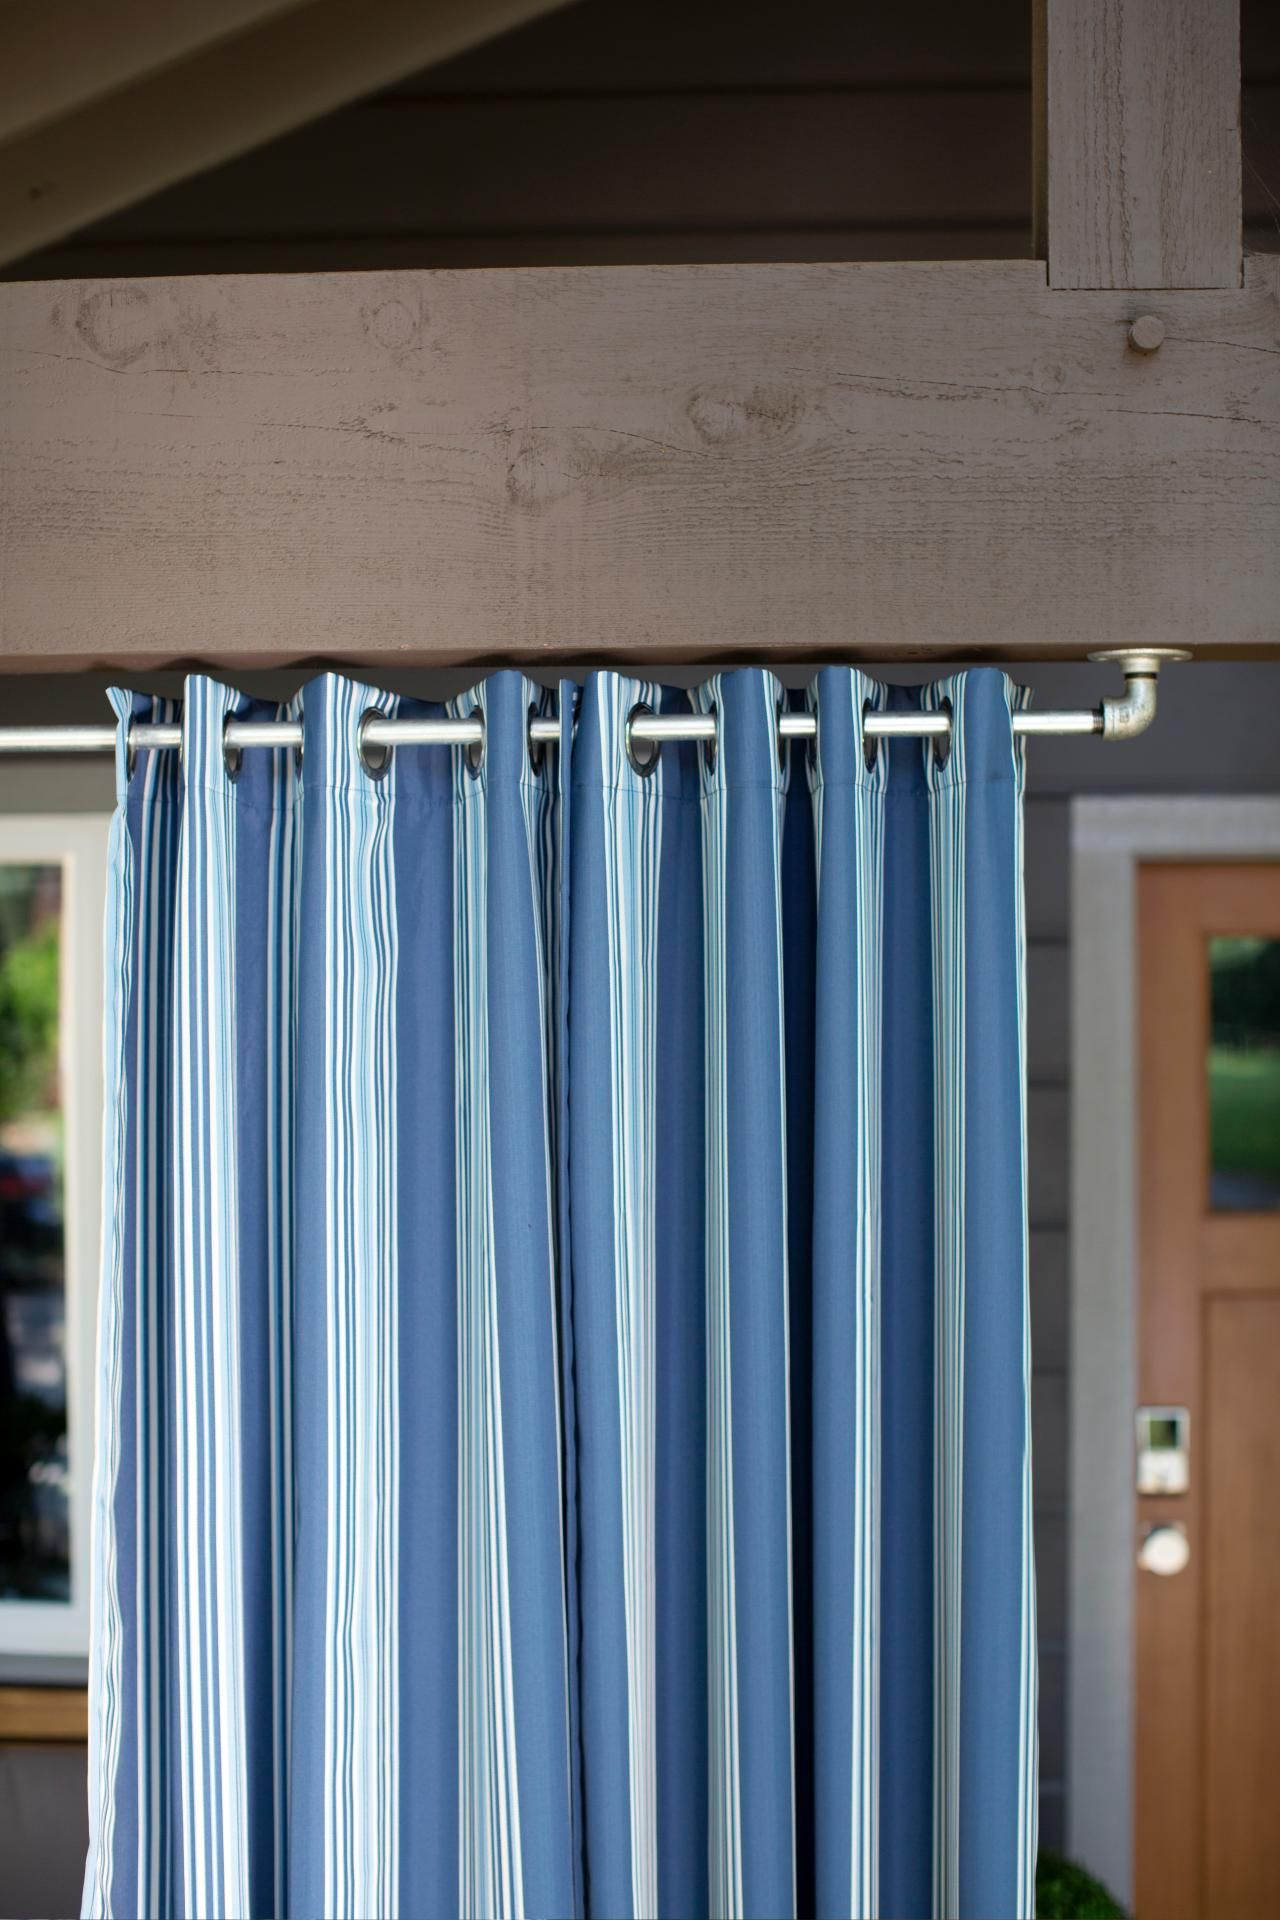 Diy outdoor curtain rods - Front Yard Pictures From Hgtv Urban Oasis 2015 Porch Curtainsoutdoor